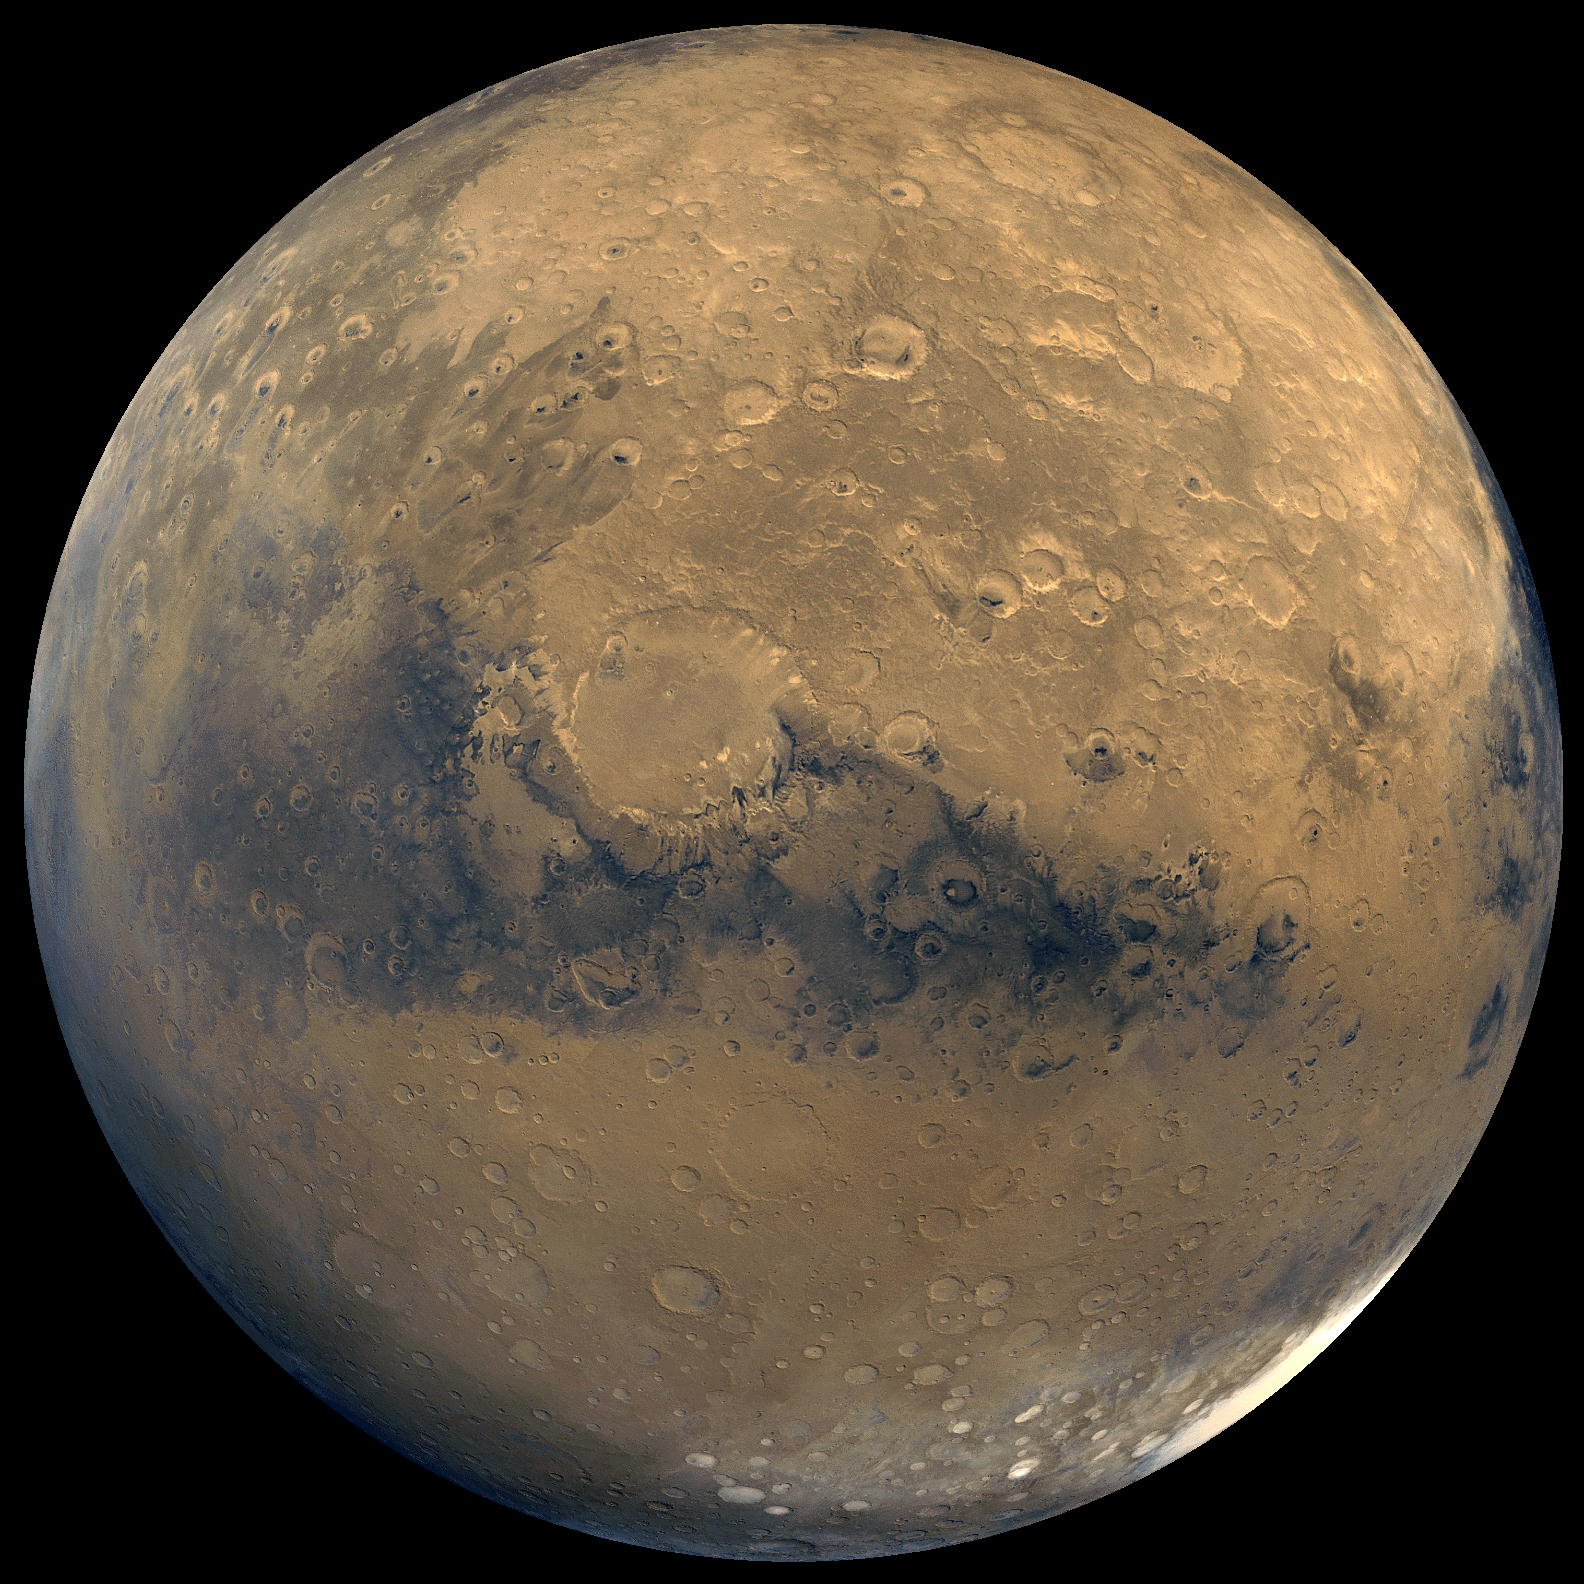 nasa satellites on mars - photo #4